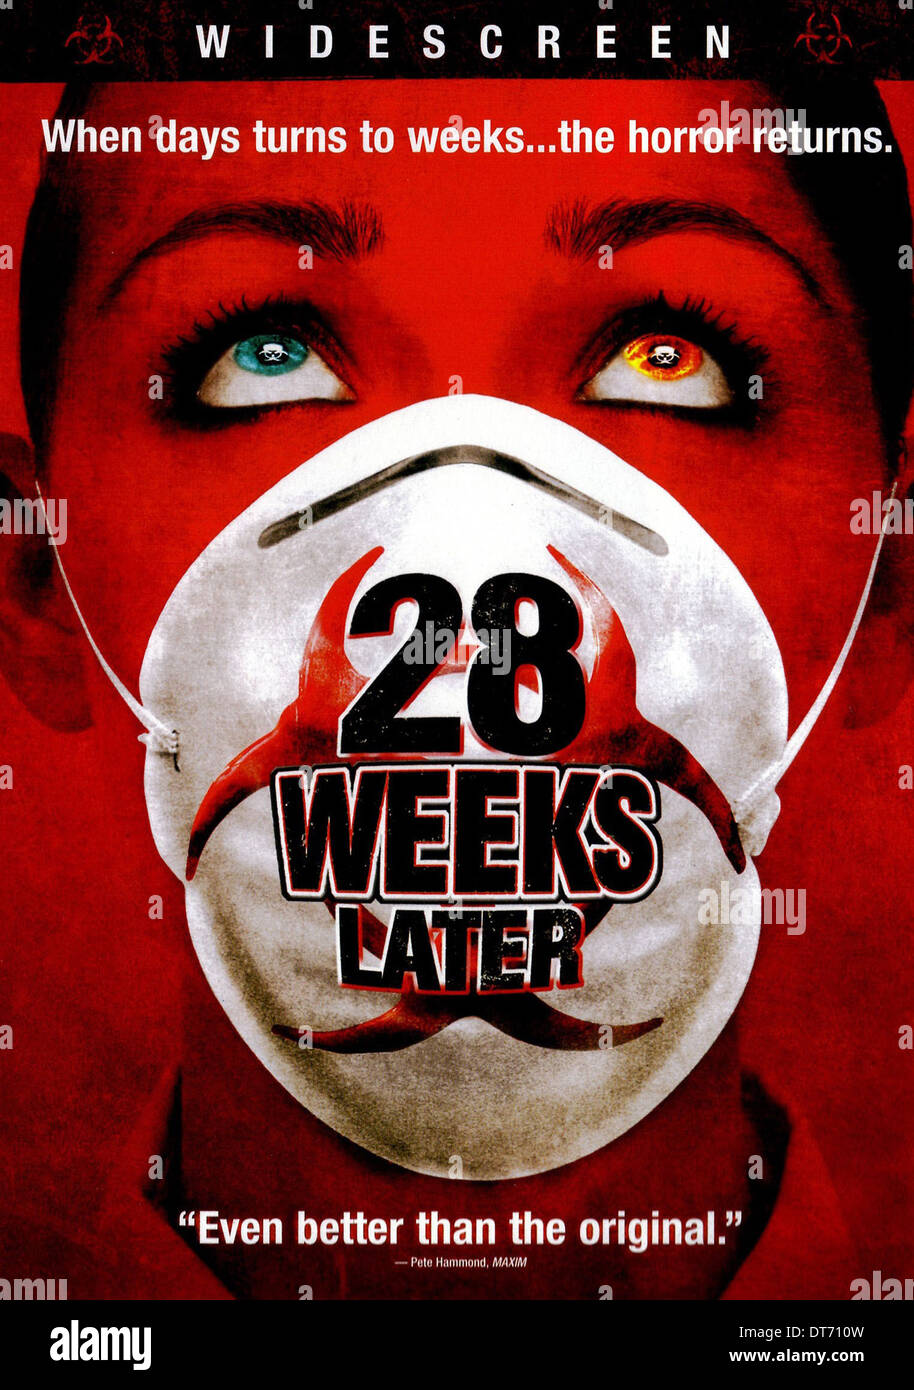 Download 28 Weeks Later Full Movie Download Movies